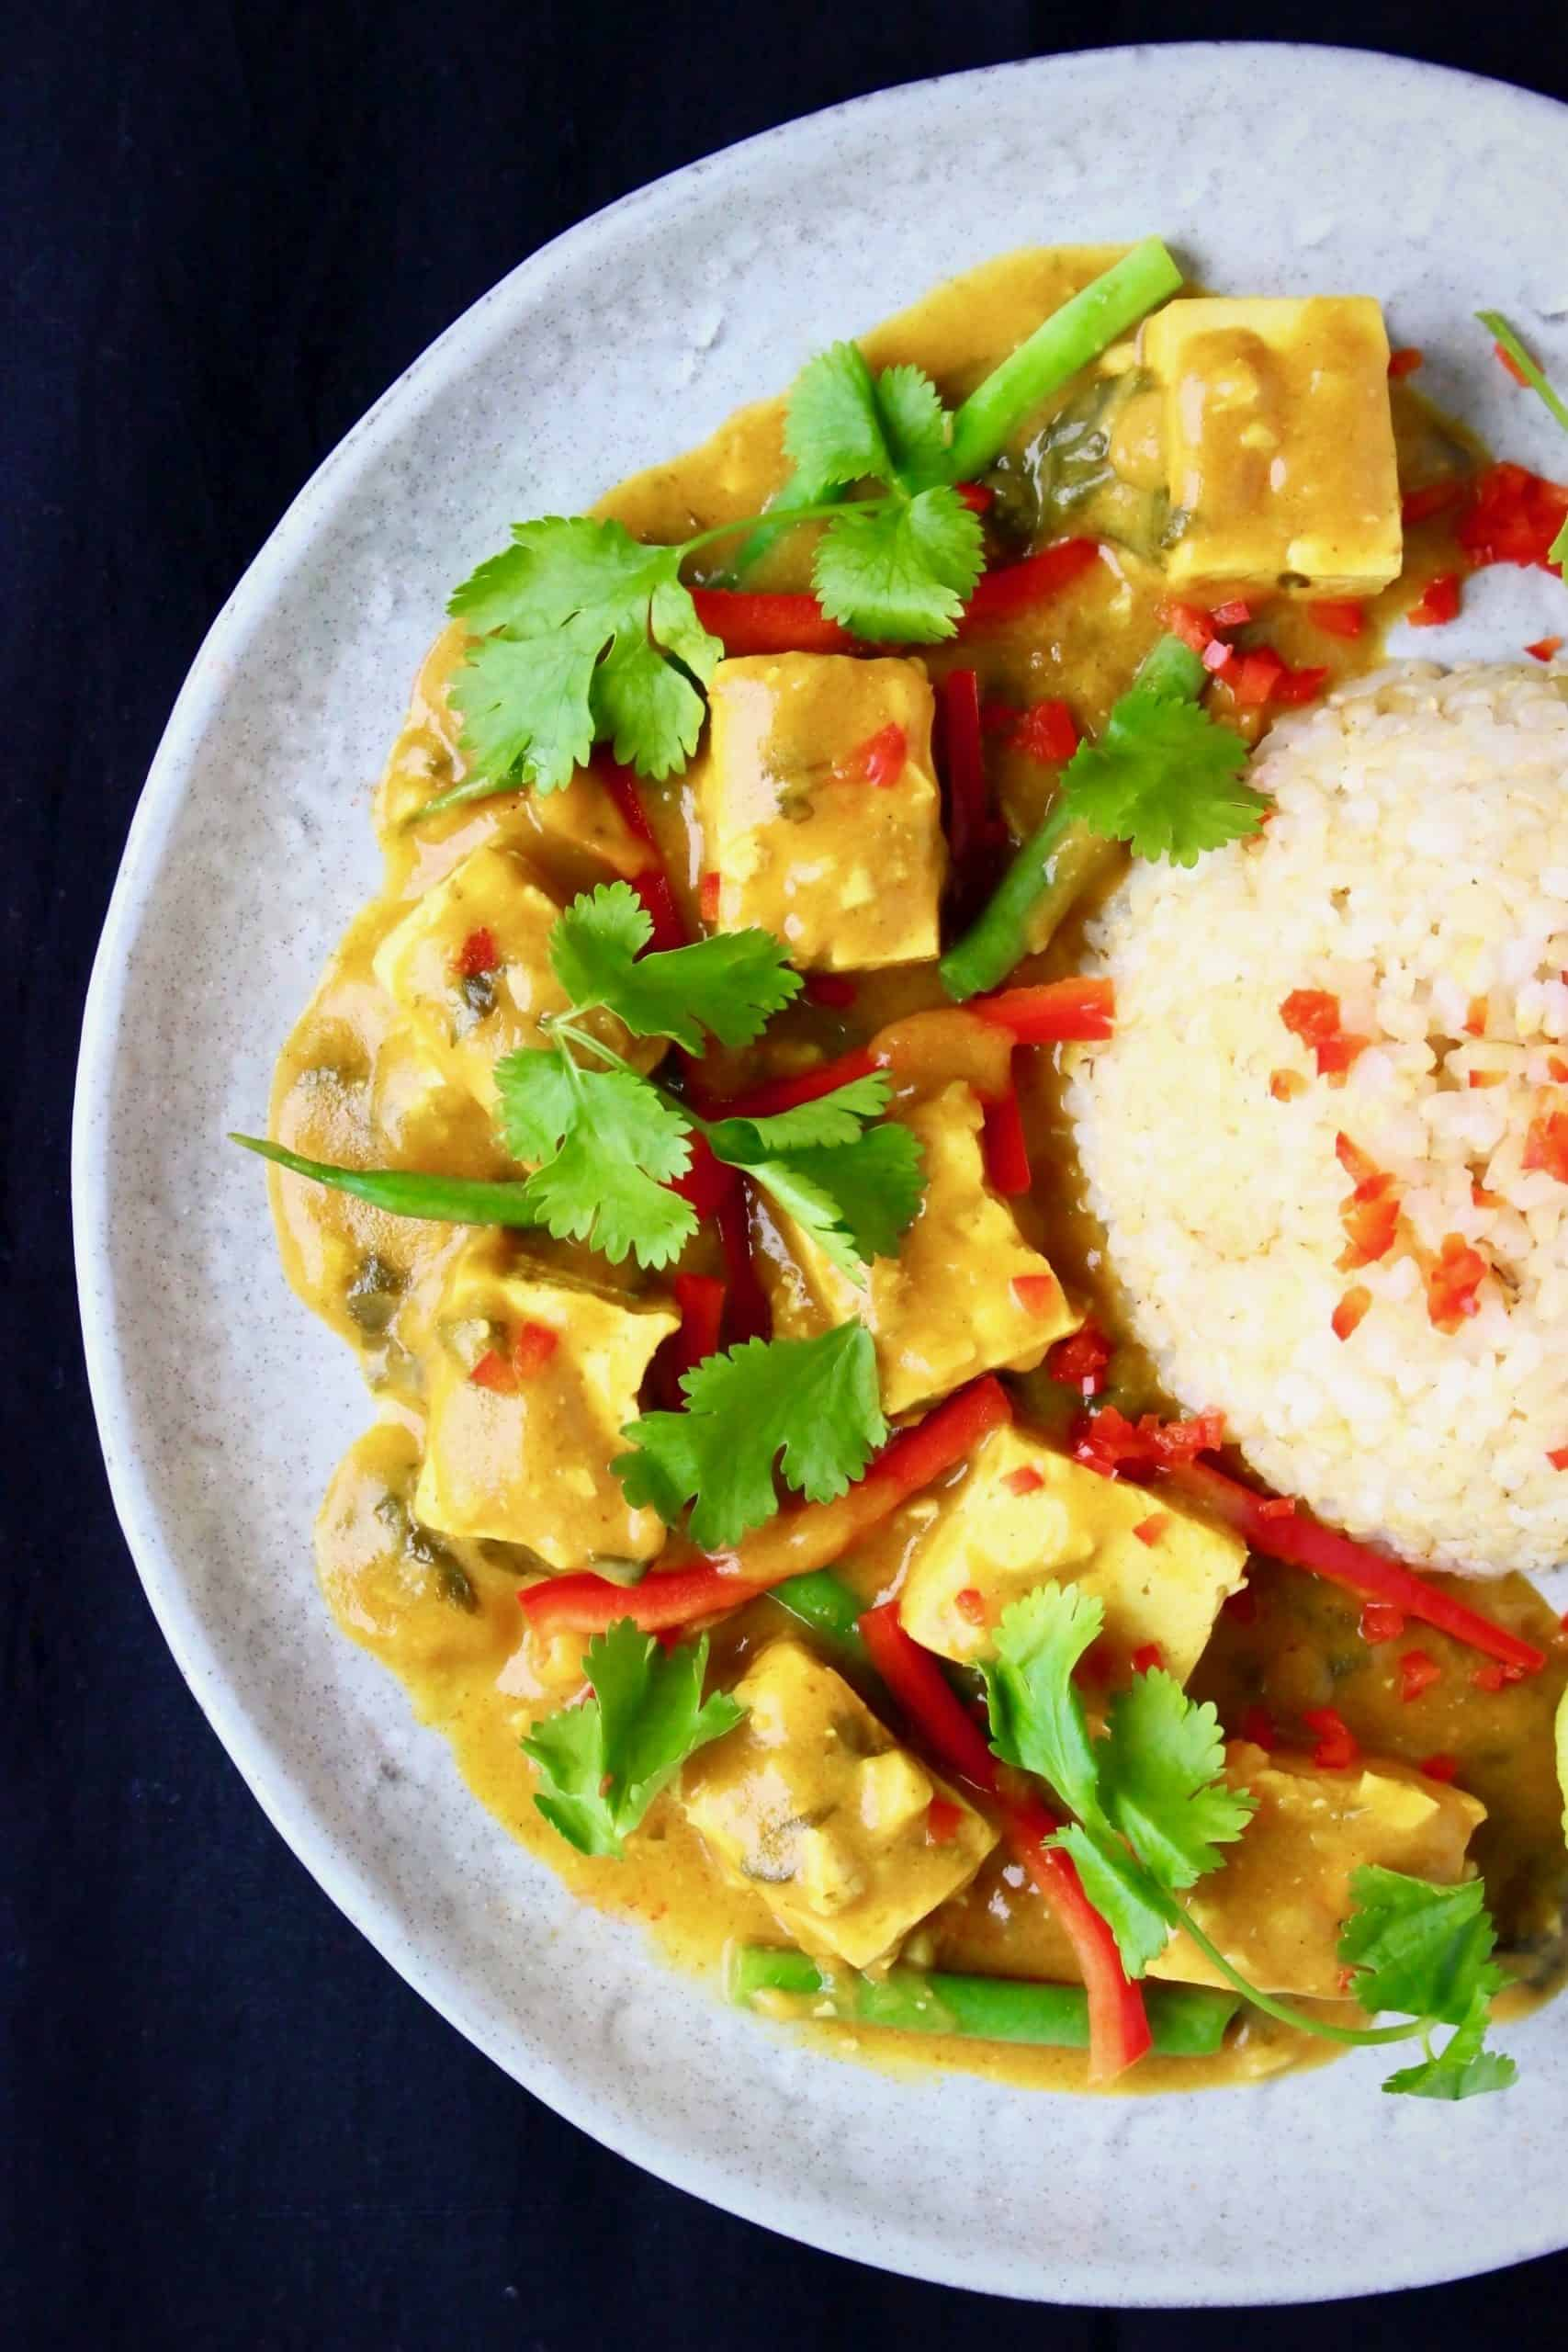 Tofu satay curry with rice on a plate